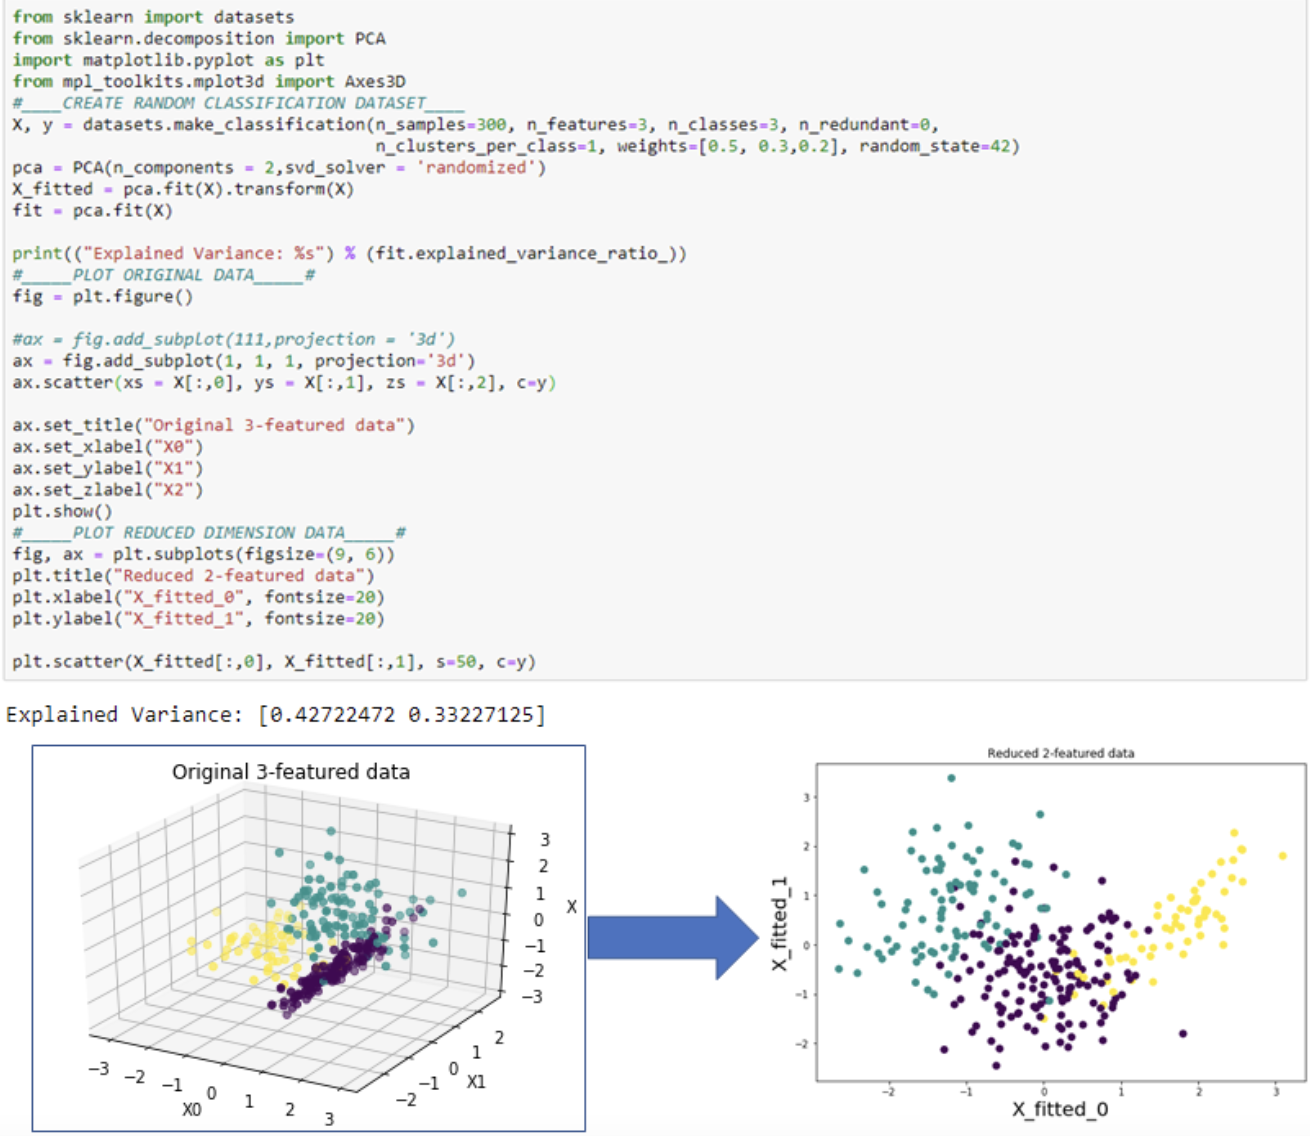 Feature engineering code for dimensionality reduiction